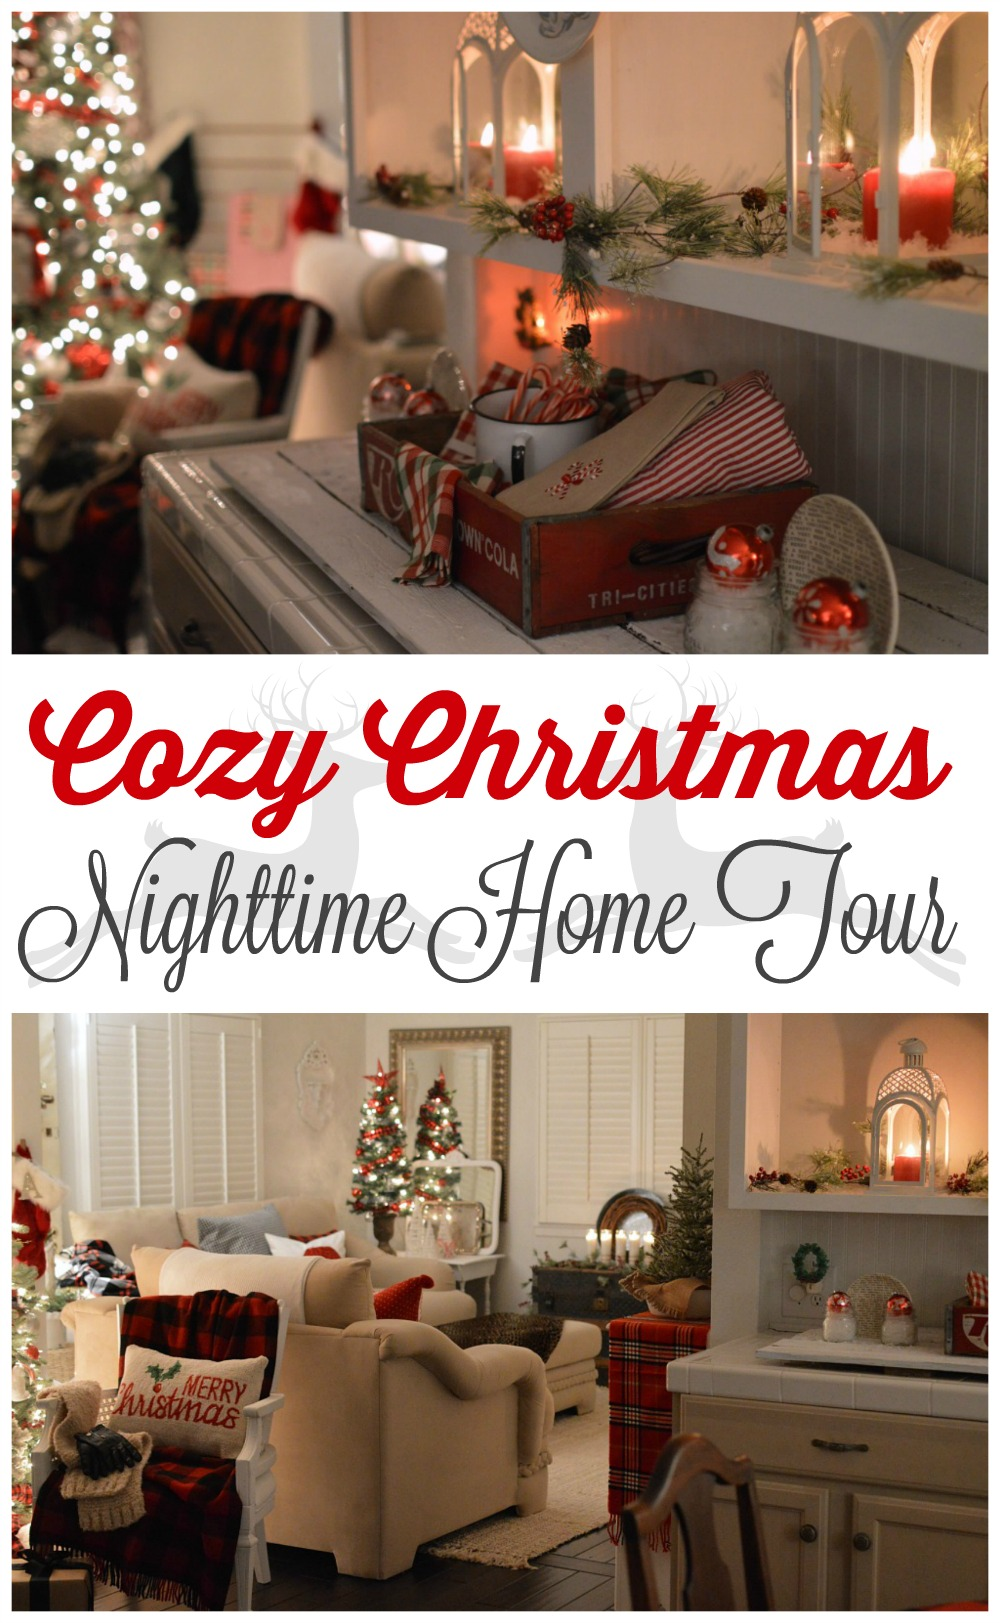 Cozy Christmas Cottage Nighttime Home Tour - tour a little house twinkly in shimmering lights and the glow of candles.